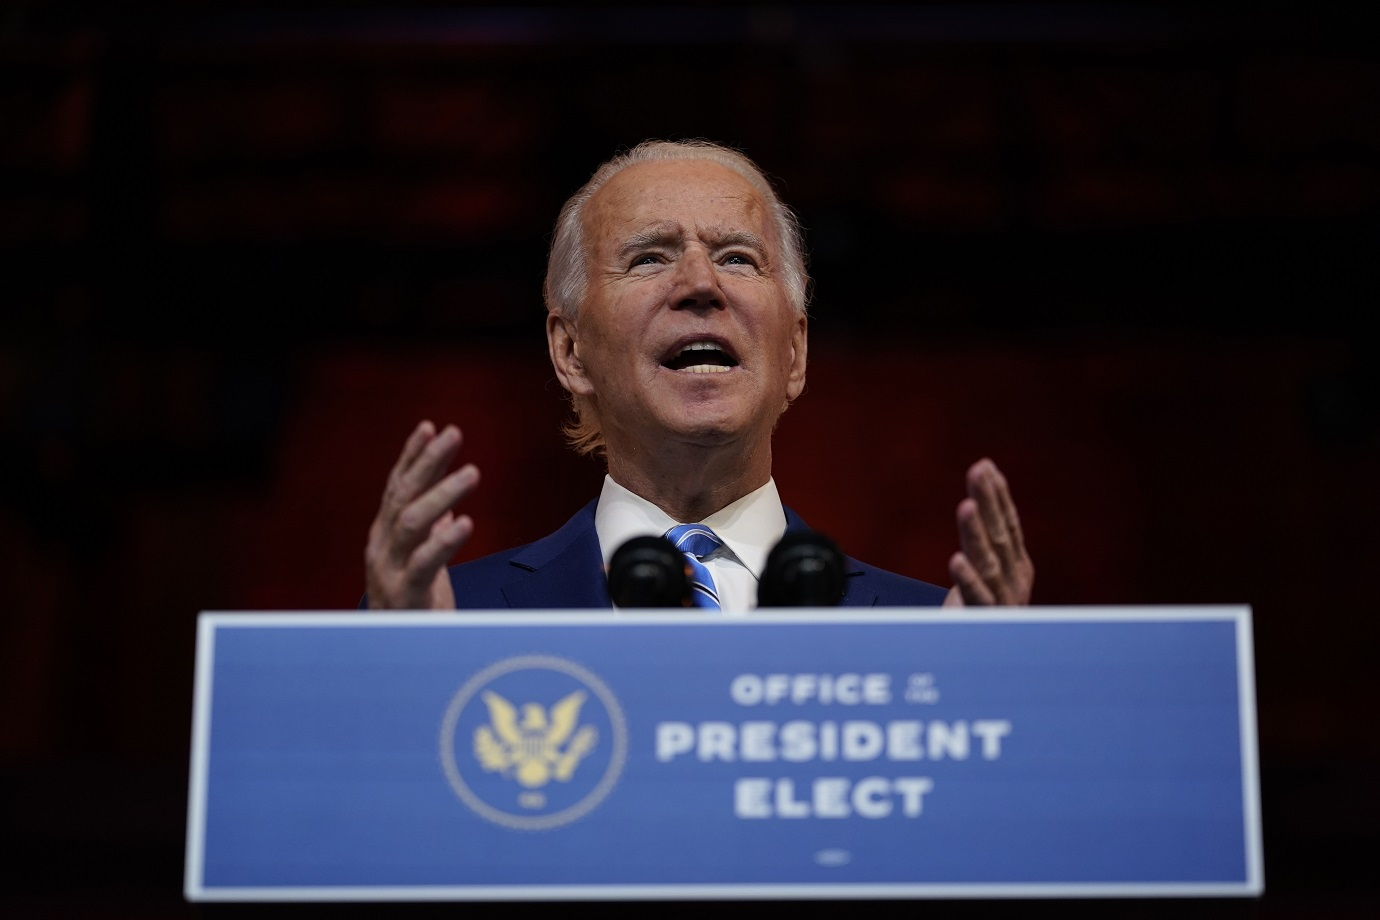 In a recent webinar, experts discussed how a Biden presidency, a possible stimulus and trade policy changes could impact apparel in 2021.